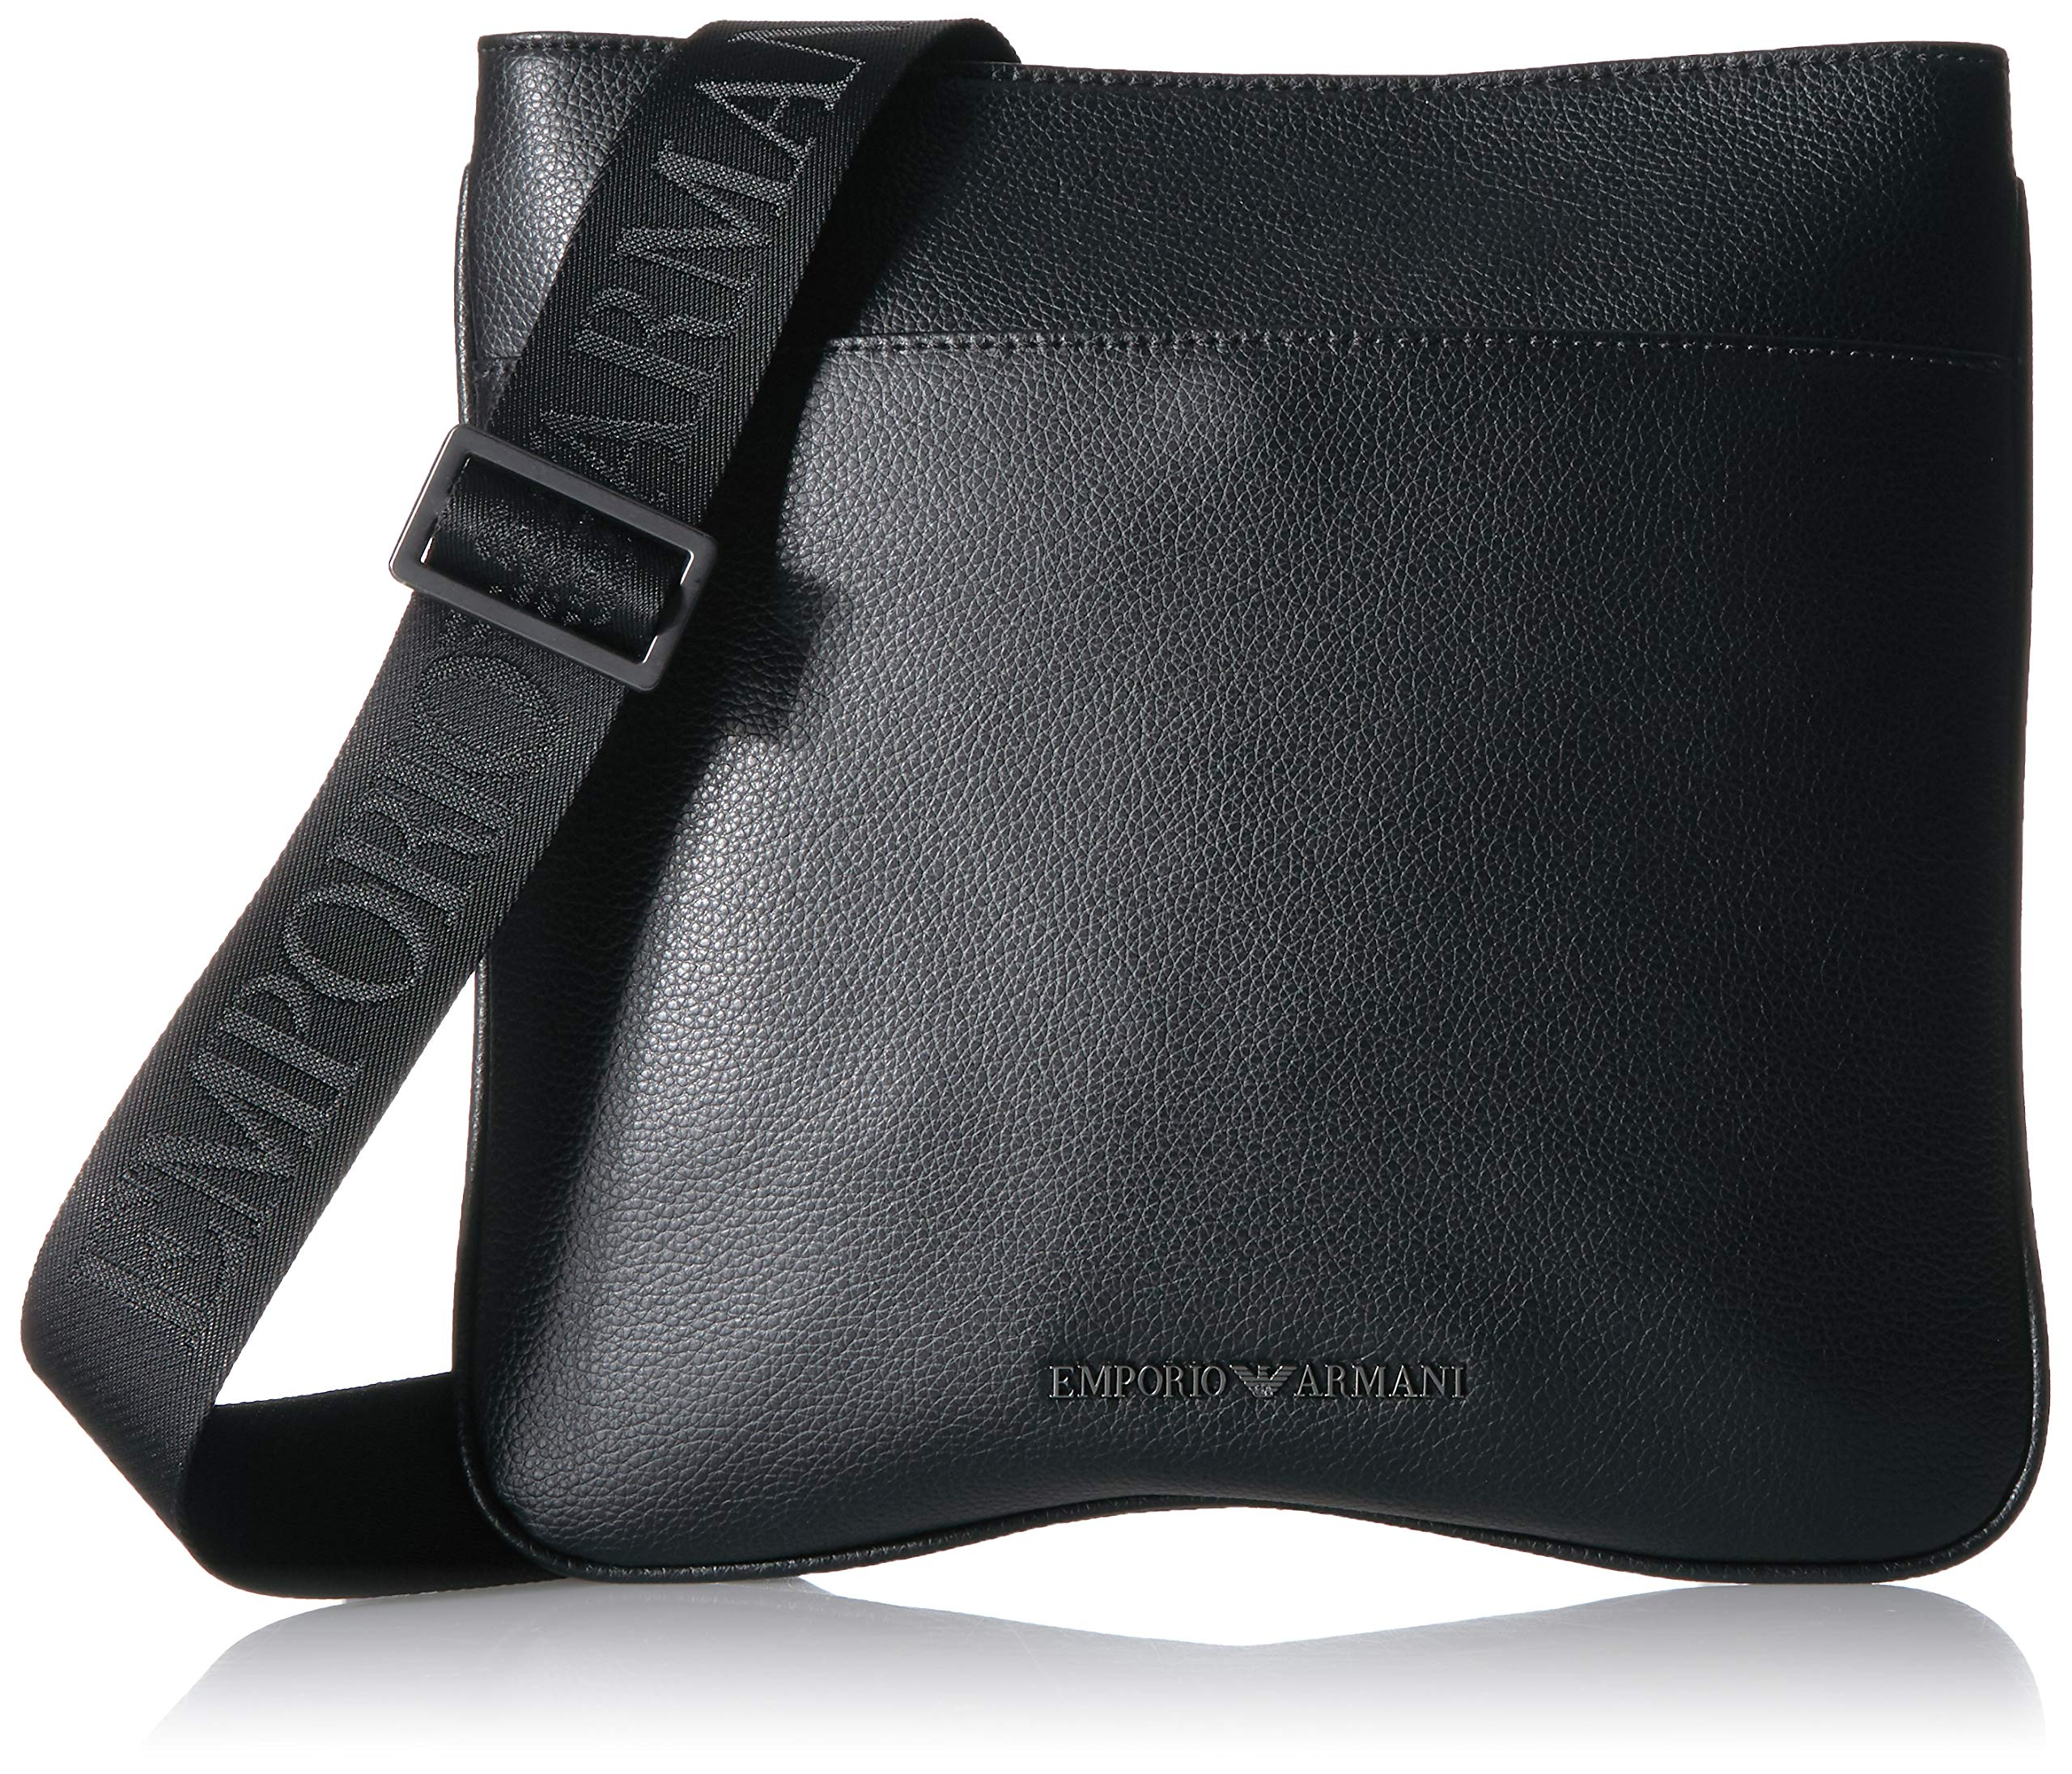 Emporio Armani Crossbody Flat Messenger Bag, Black